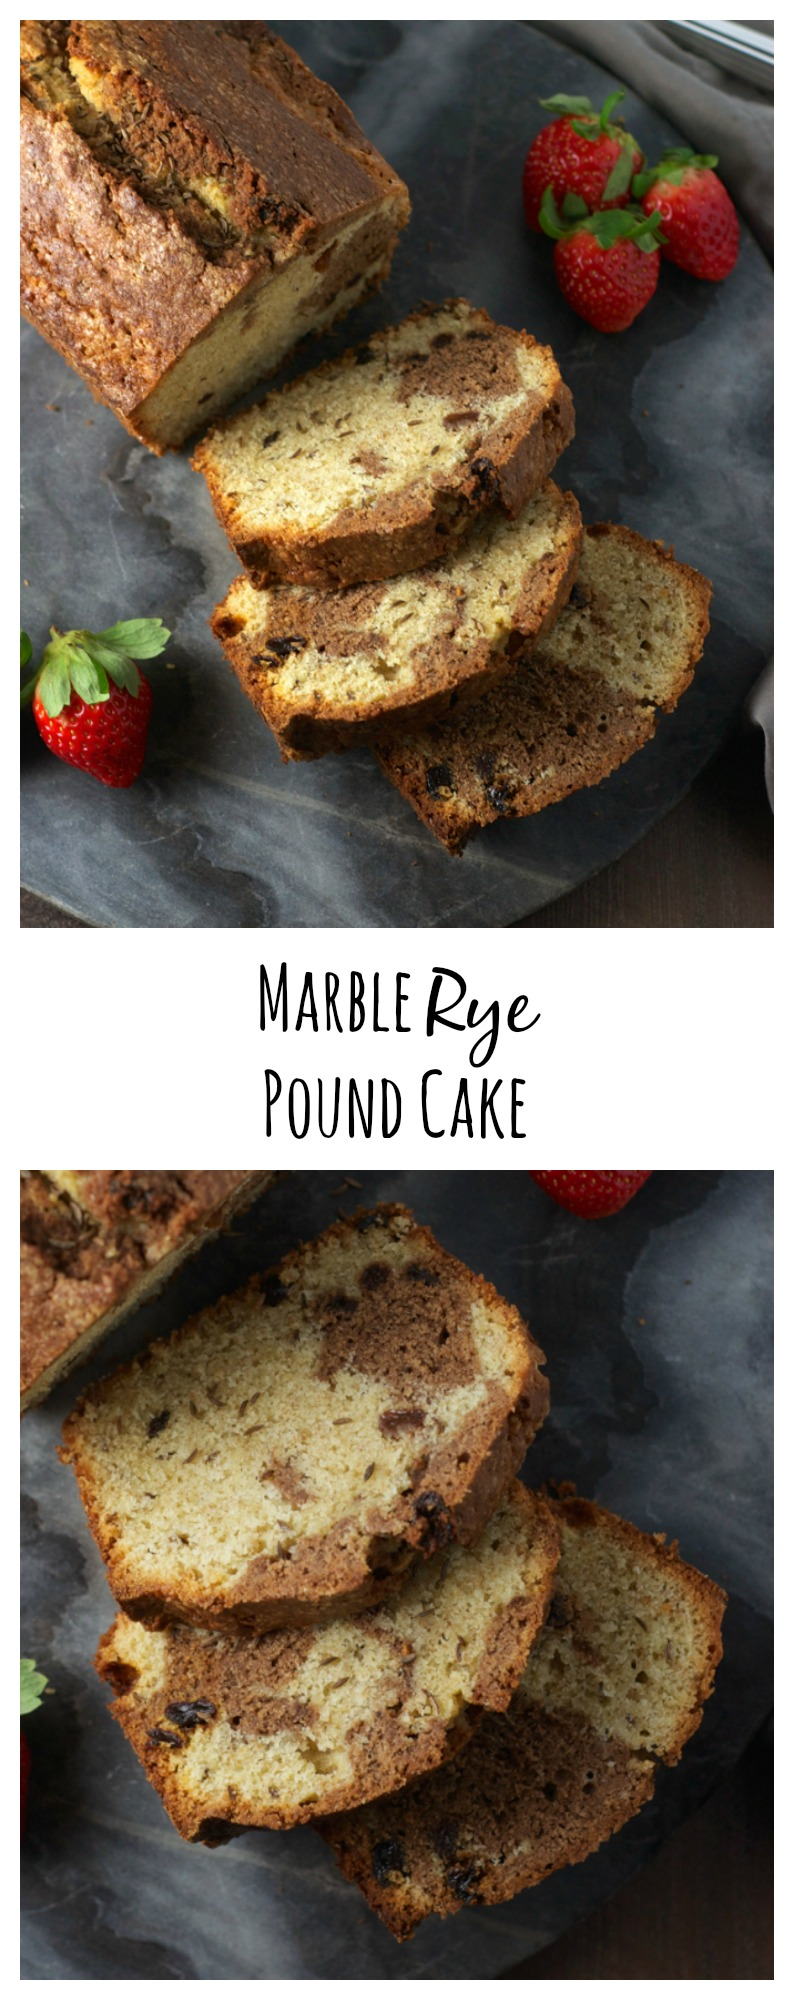 What if a marble pound cake and a marble rye bread got married? This delicious cake! Definitely sweet, and just a little bit savory too.